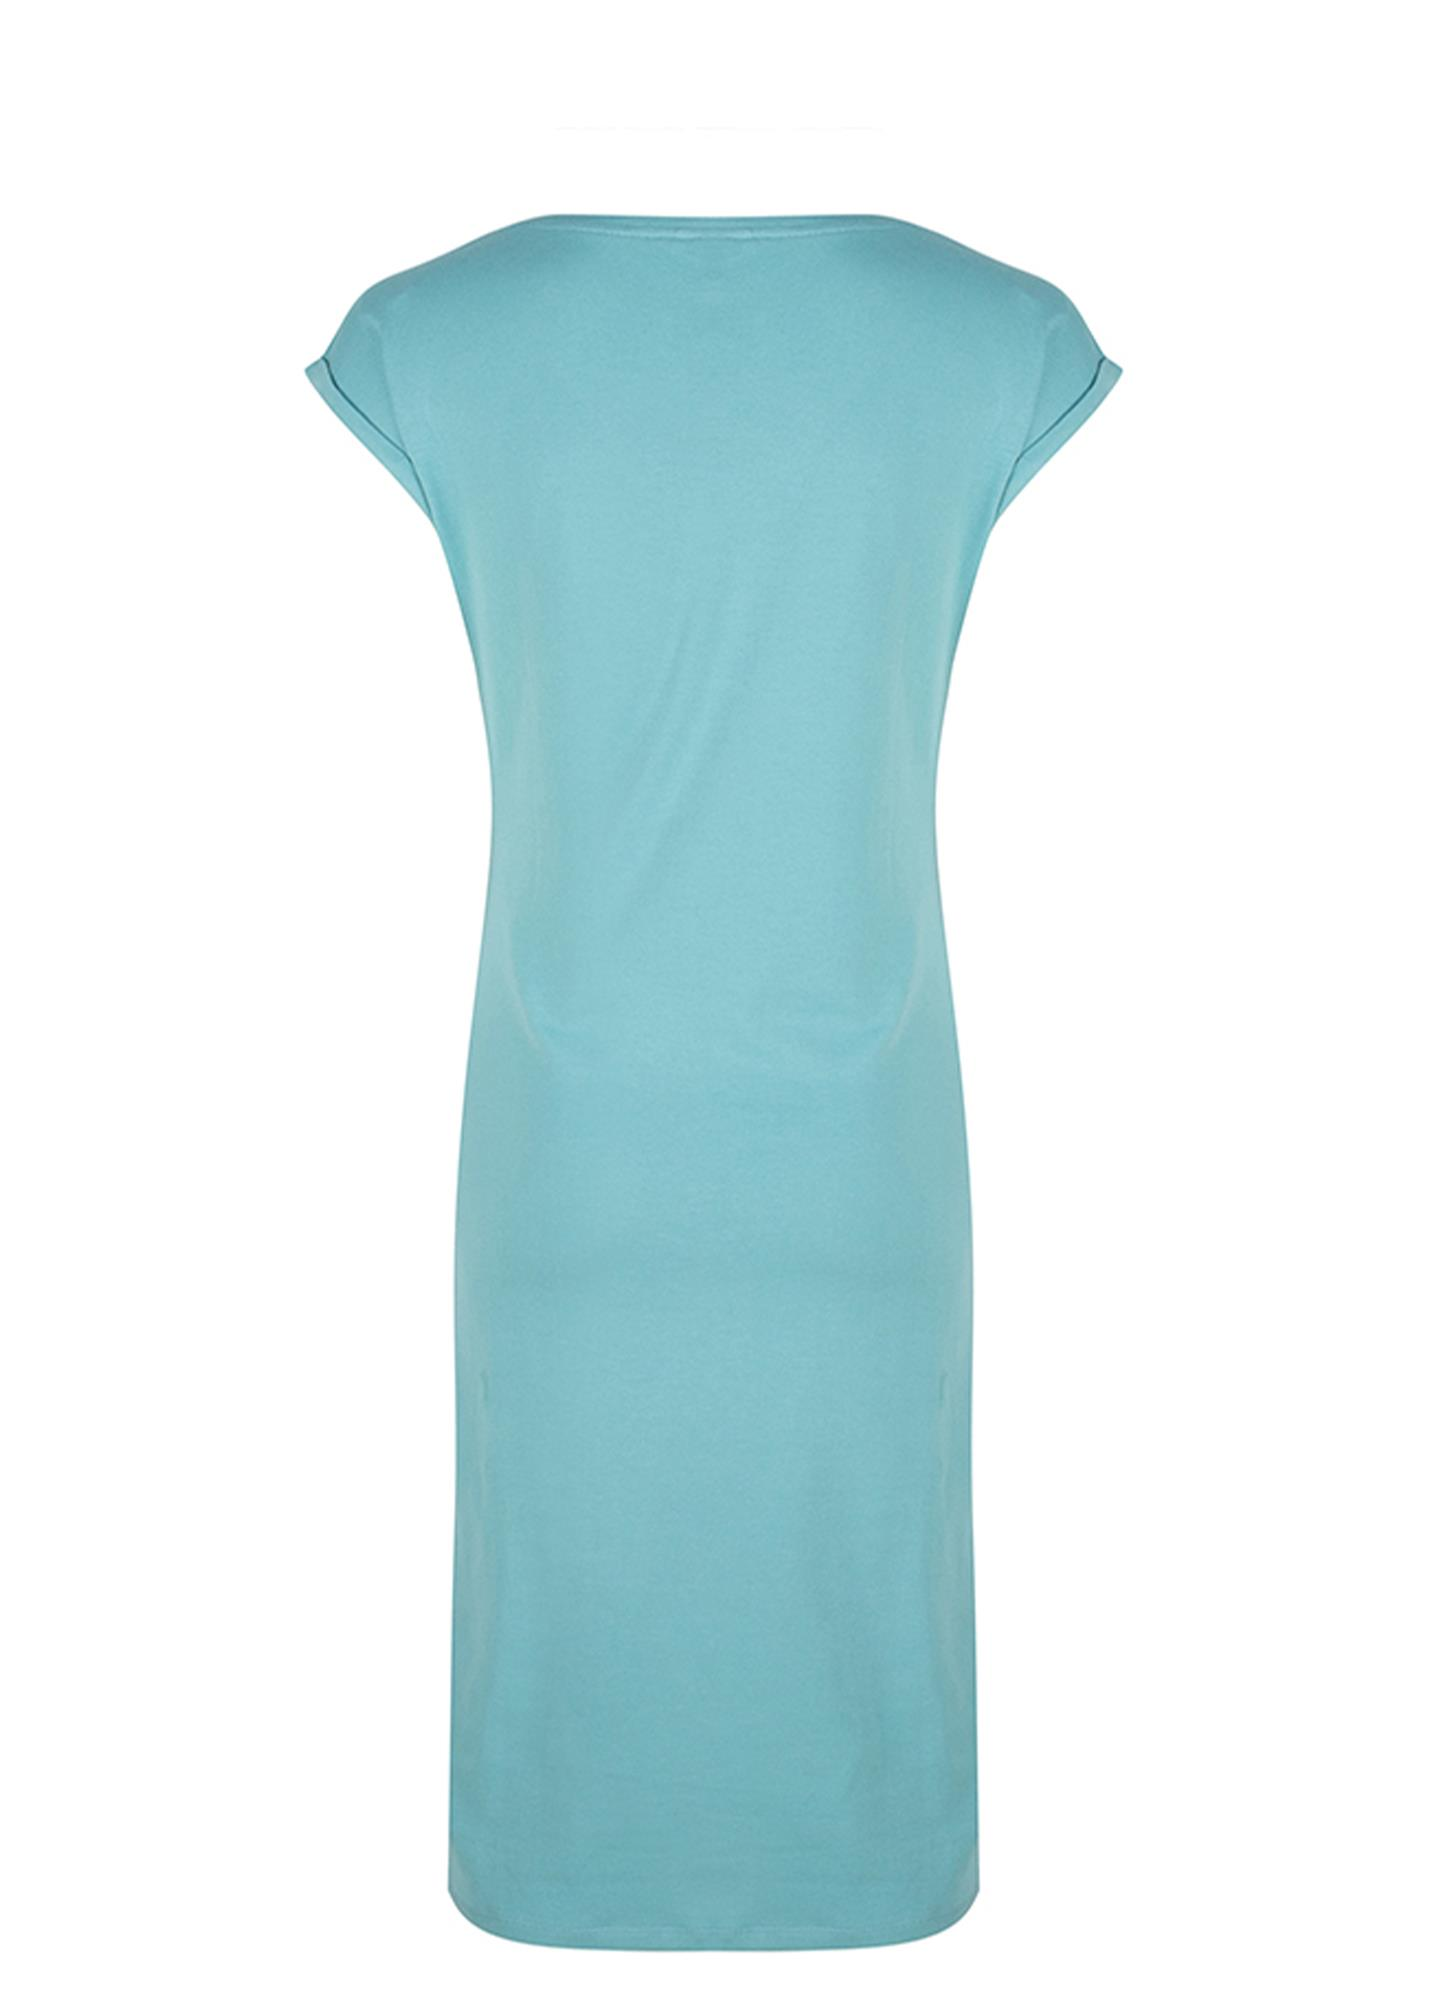 Esqualo Jurk Solid Knot Jersey turquoise maat: M - 38